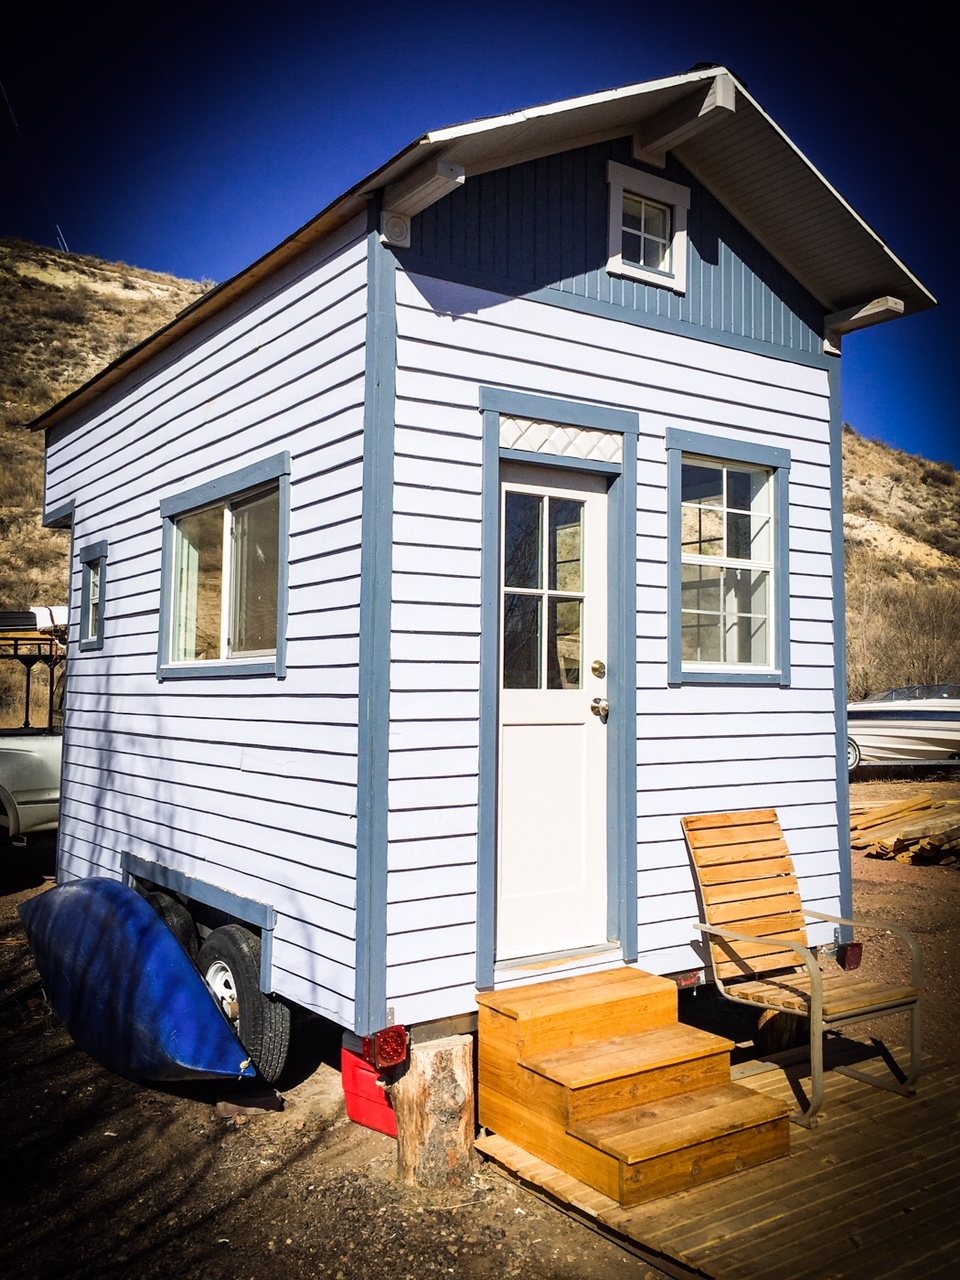 Tiny House Fixes Millennial's Money Woes | Squared Away Blog